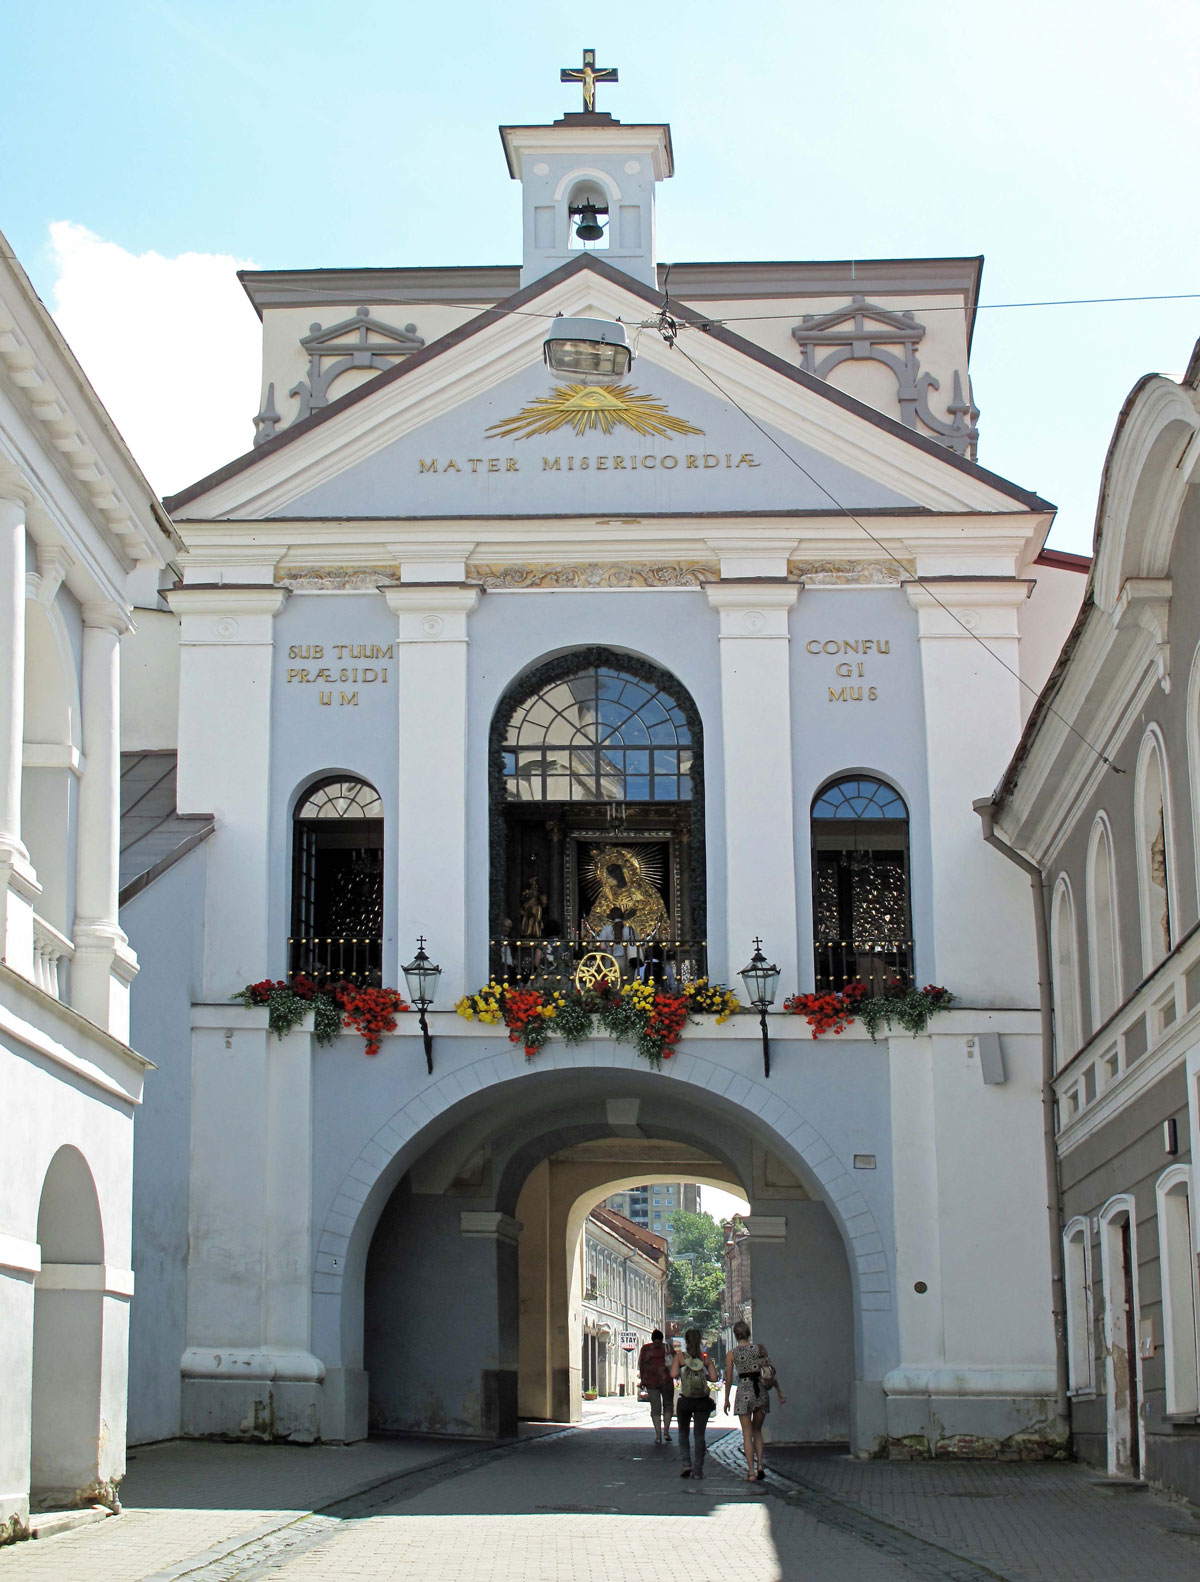 Ausros Gate with the Vilnius Madonna in the central window